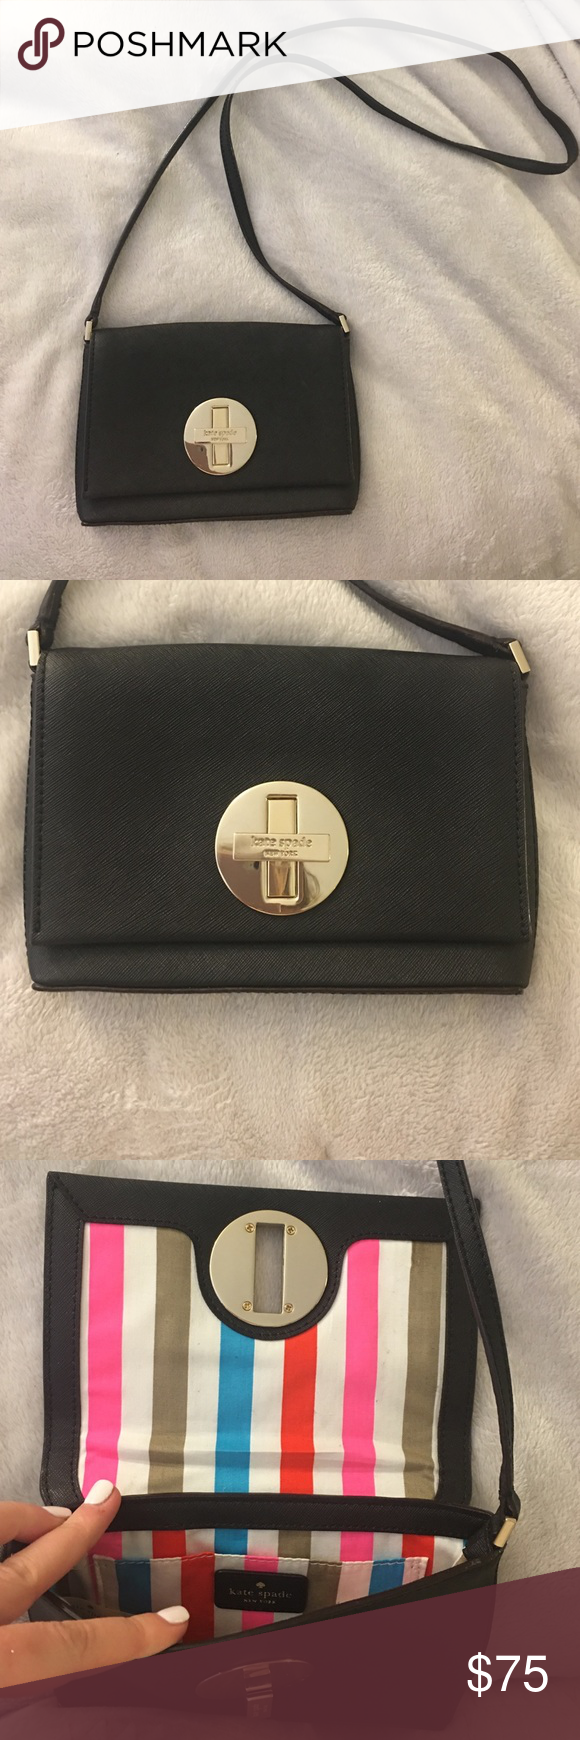 Kate Spade Black Crossbody Like new Kate Spade black Crossbody. Opens with latch on front, perfect for going out. Make an offer kate spade Bags Crossbody Bags